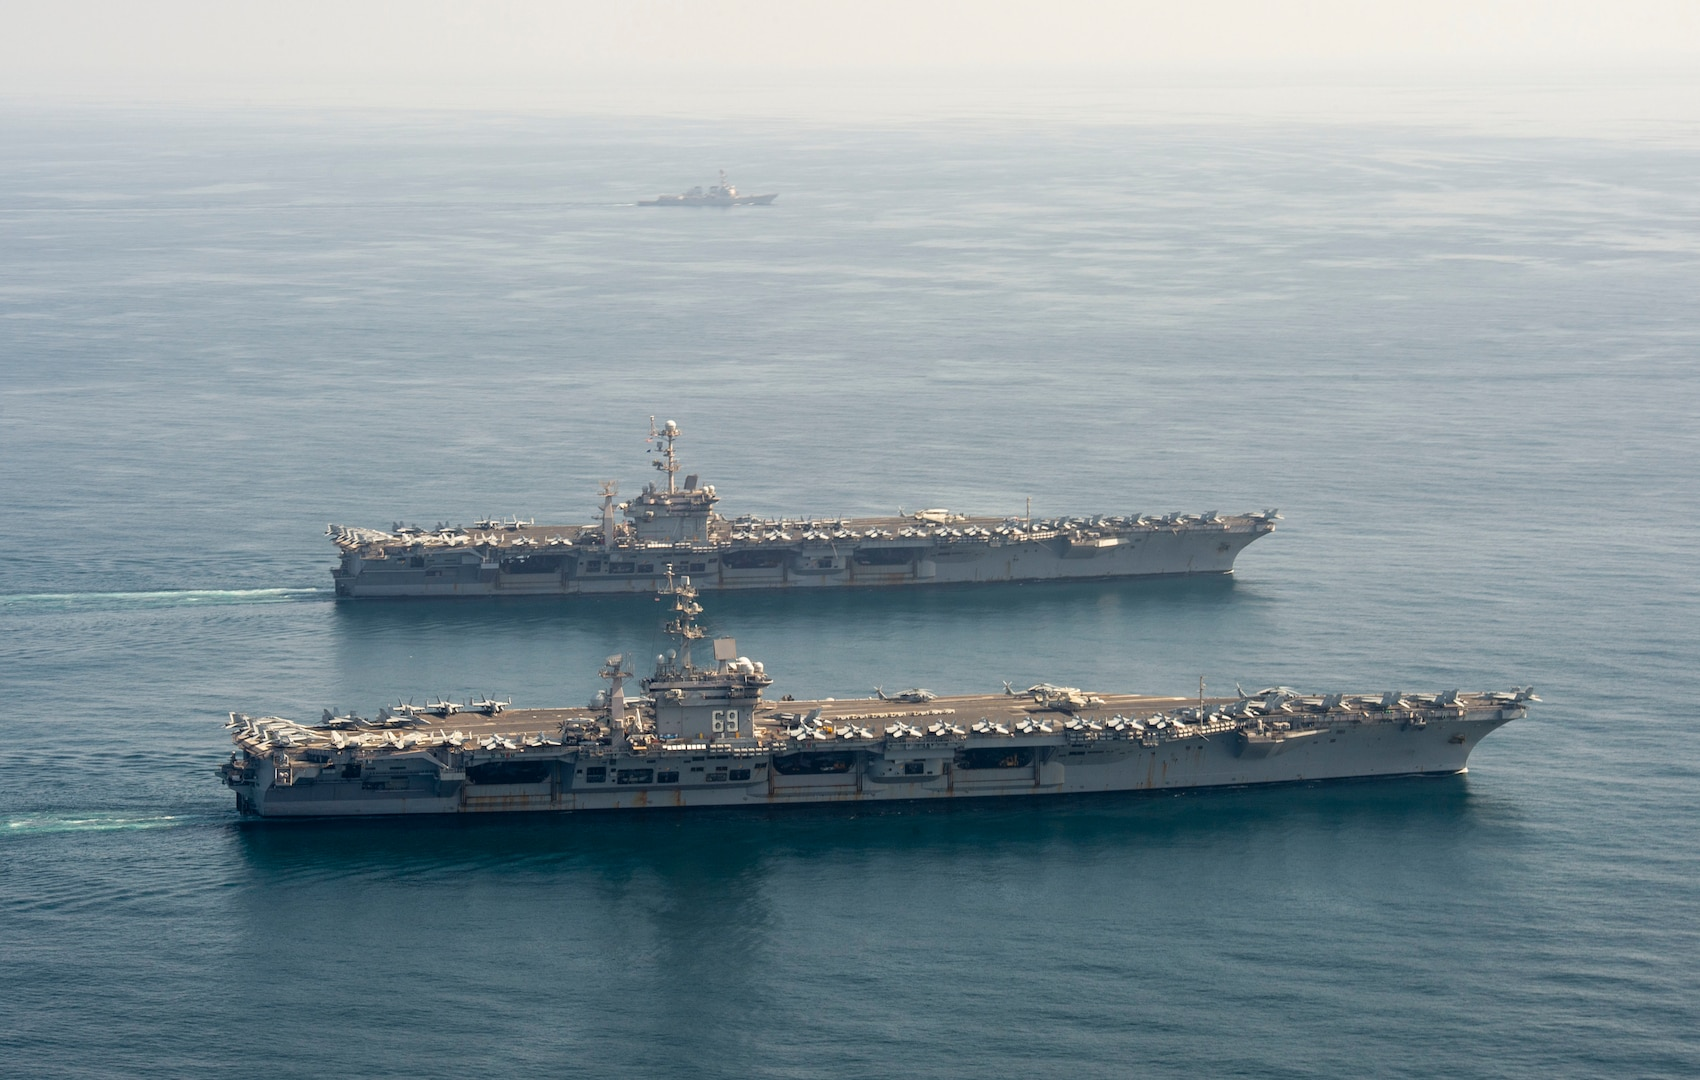 The aircraft carriers USS Dwight D. Eisenhower (CVN 69), front, and USS Harry S. Truman (CVN 75), and the guided-missile destroyer USS Lassen (DDG 82) transit the Arabian Sea March 18, 2020. The Harry S. Truman Carrier Strike Group is deployed to the U.S. 5th Fleet area of operations in support of naval operations to ensure maritime stability and security in the Central Region, connecting the Mediterranean and the Pacific through the western Indian Ocean and three strategic choke points.